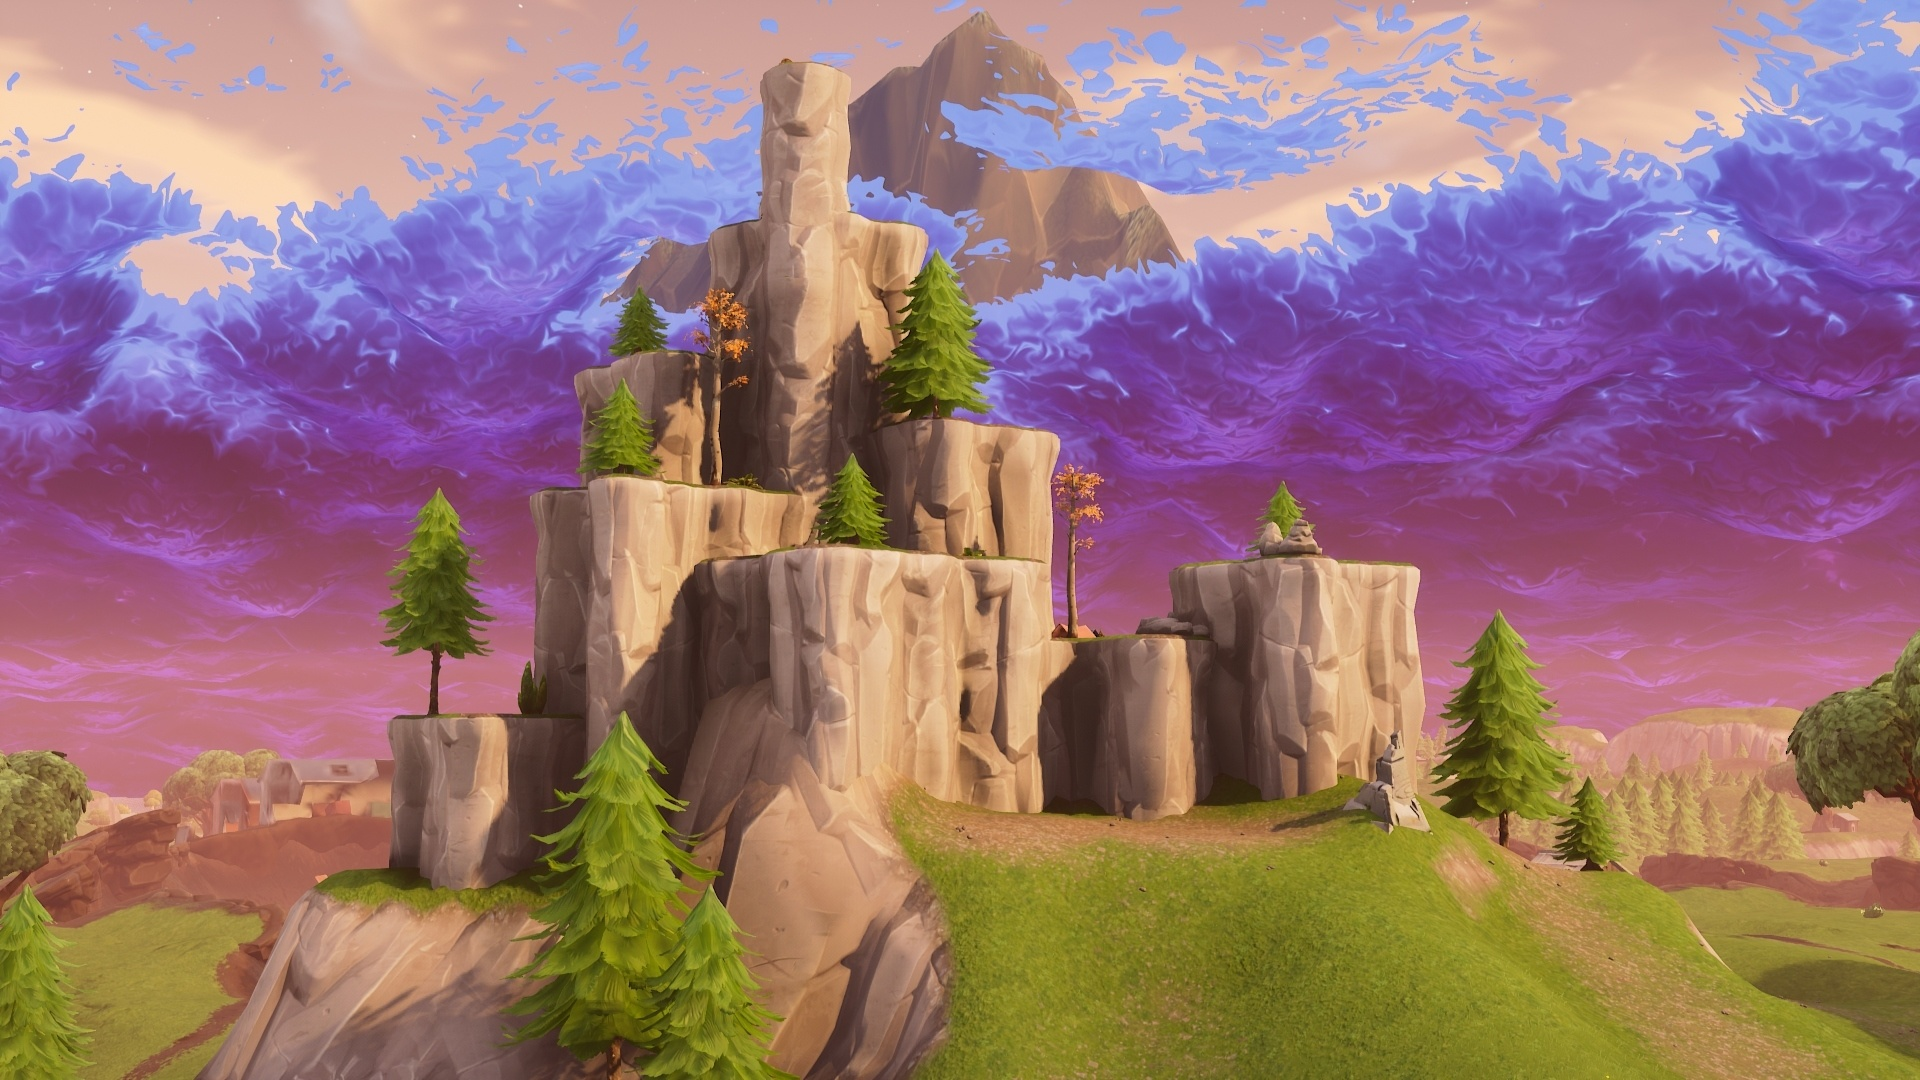 Download 1920x1080 wallpaper rocks mountain fortnite video game full hd hdtv fhd 1080p - 1366x768 is 720p or 1080p ...